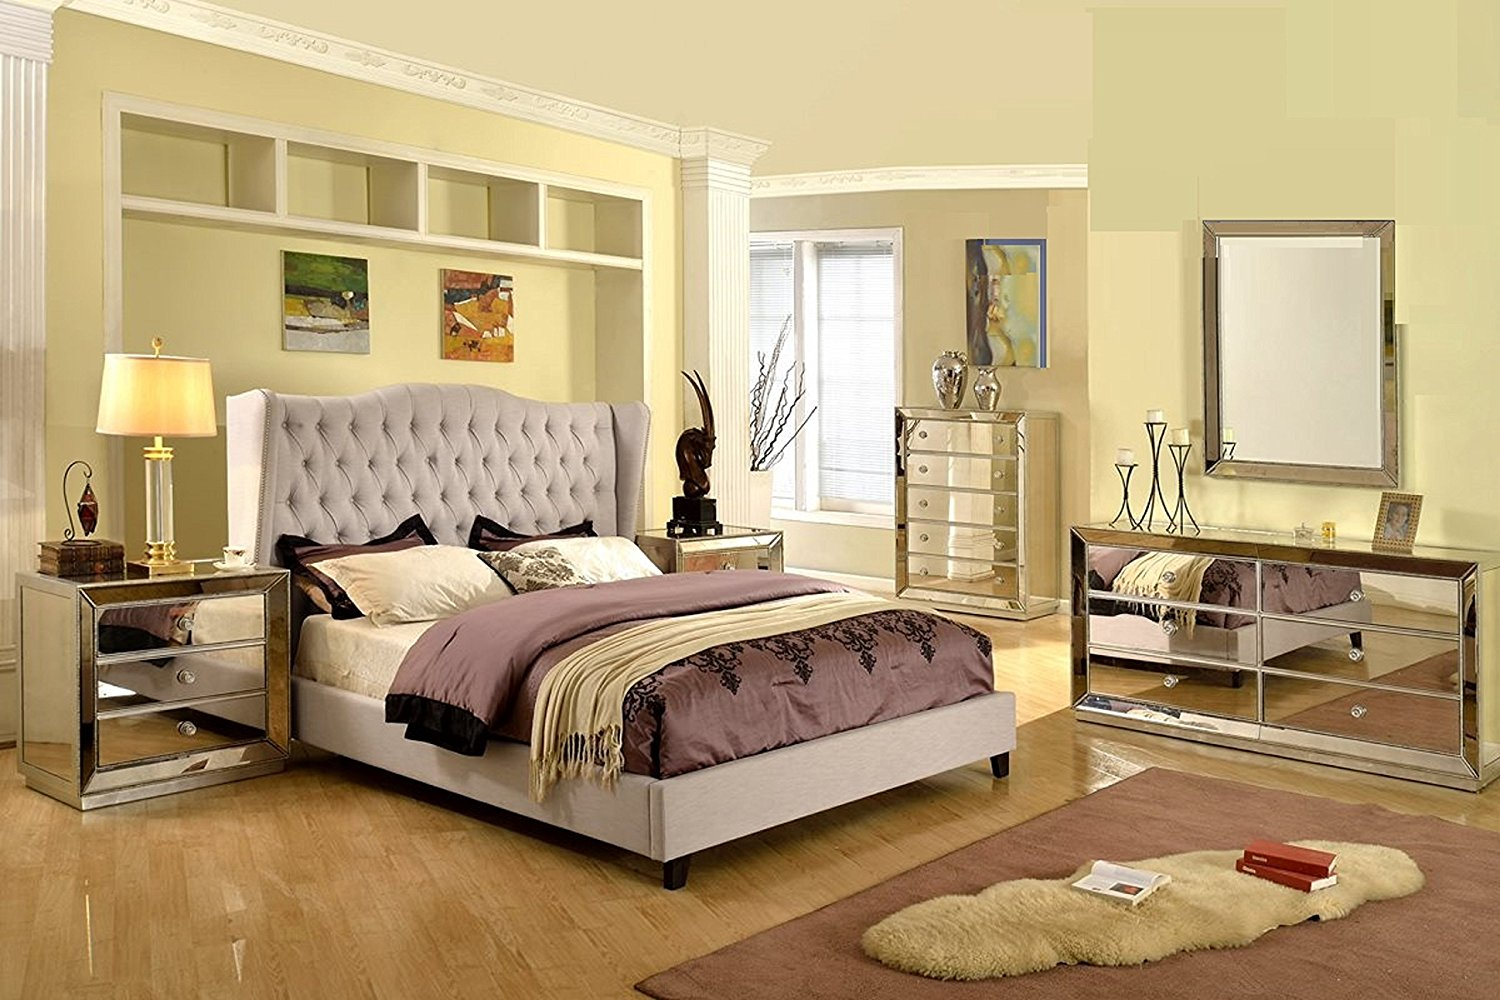 Formal Silver Mirrored Jameson Bedroom Set Taupe Color Queen Size Bed Wing Back Linen Blend Tufted HB w Classic Dresser Mirror Nightstand 4pc Set Nailhead Trim